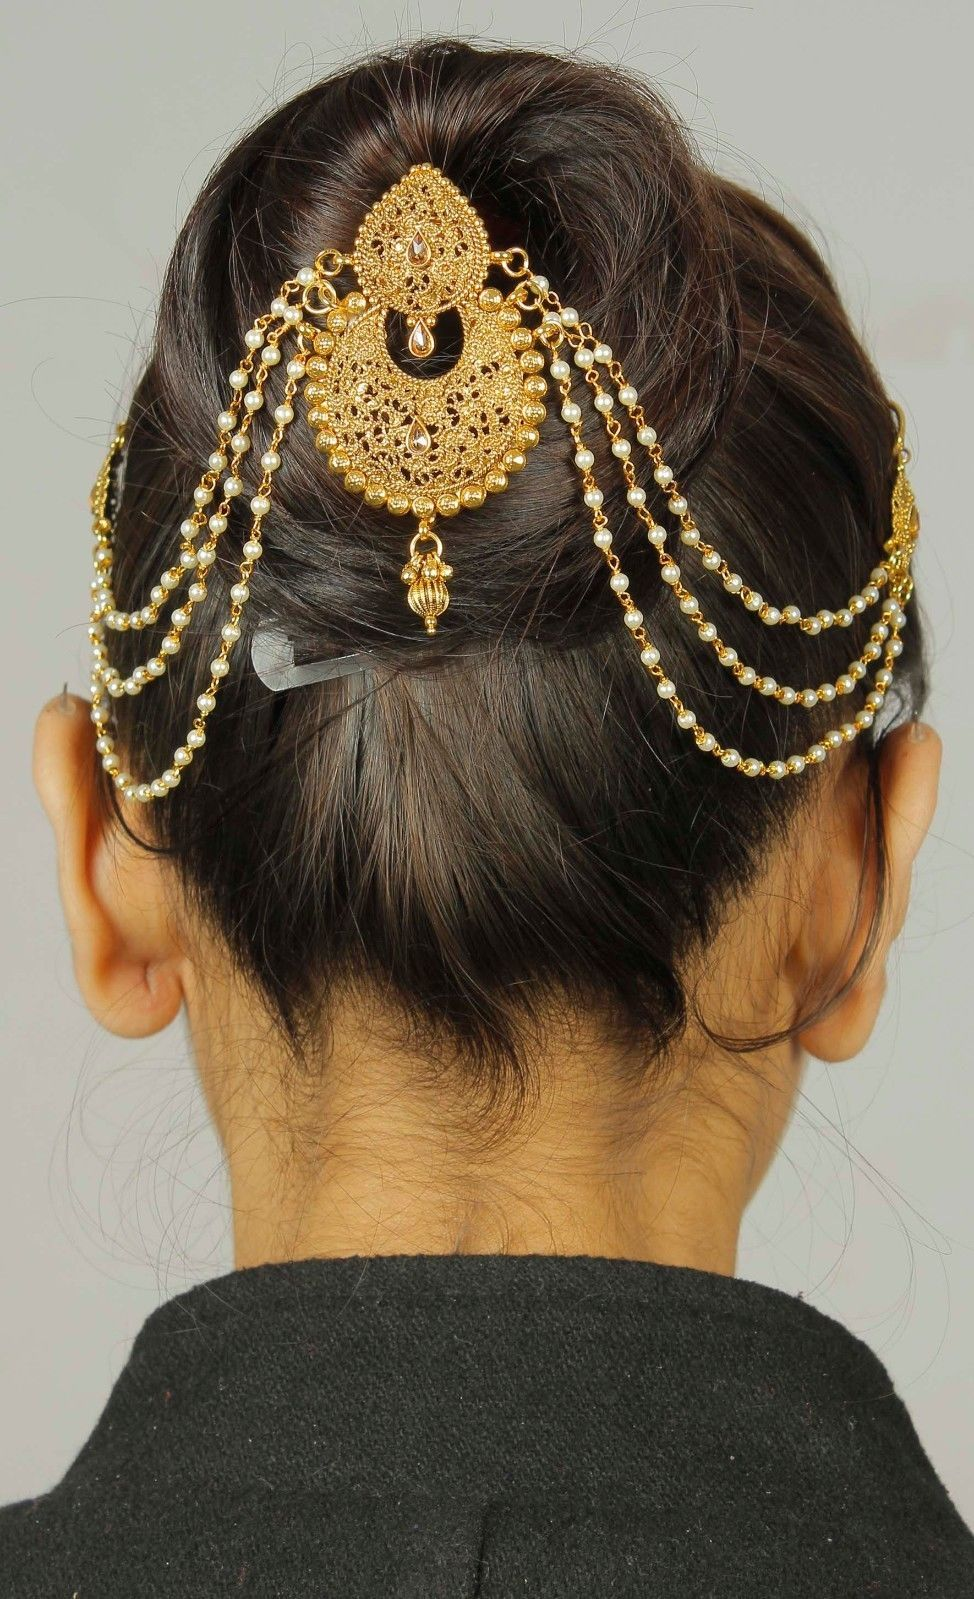 details about ethnic indian women hair accessory wedding